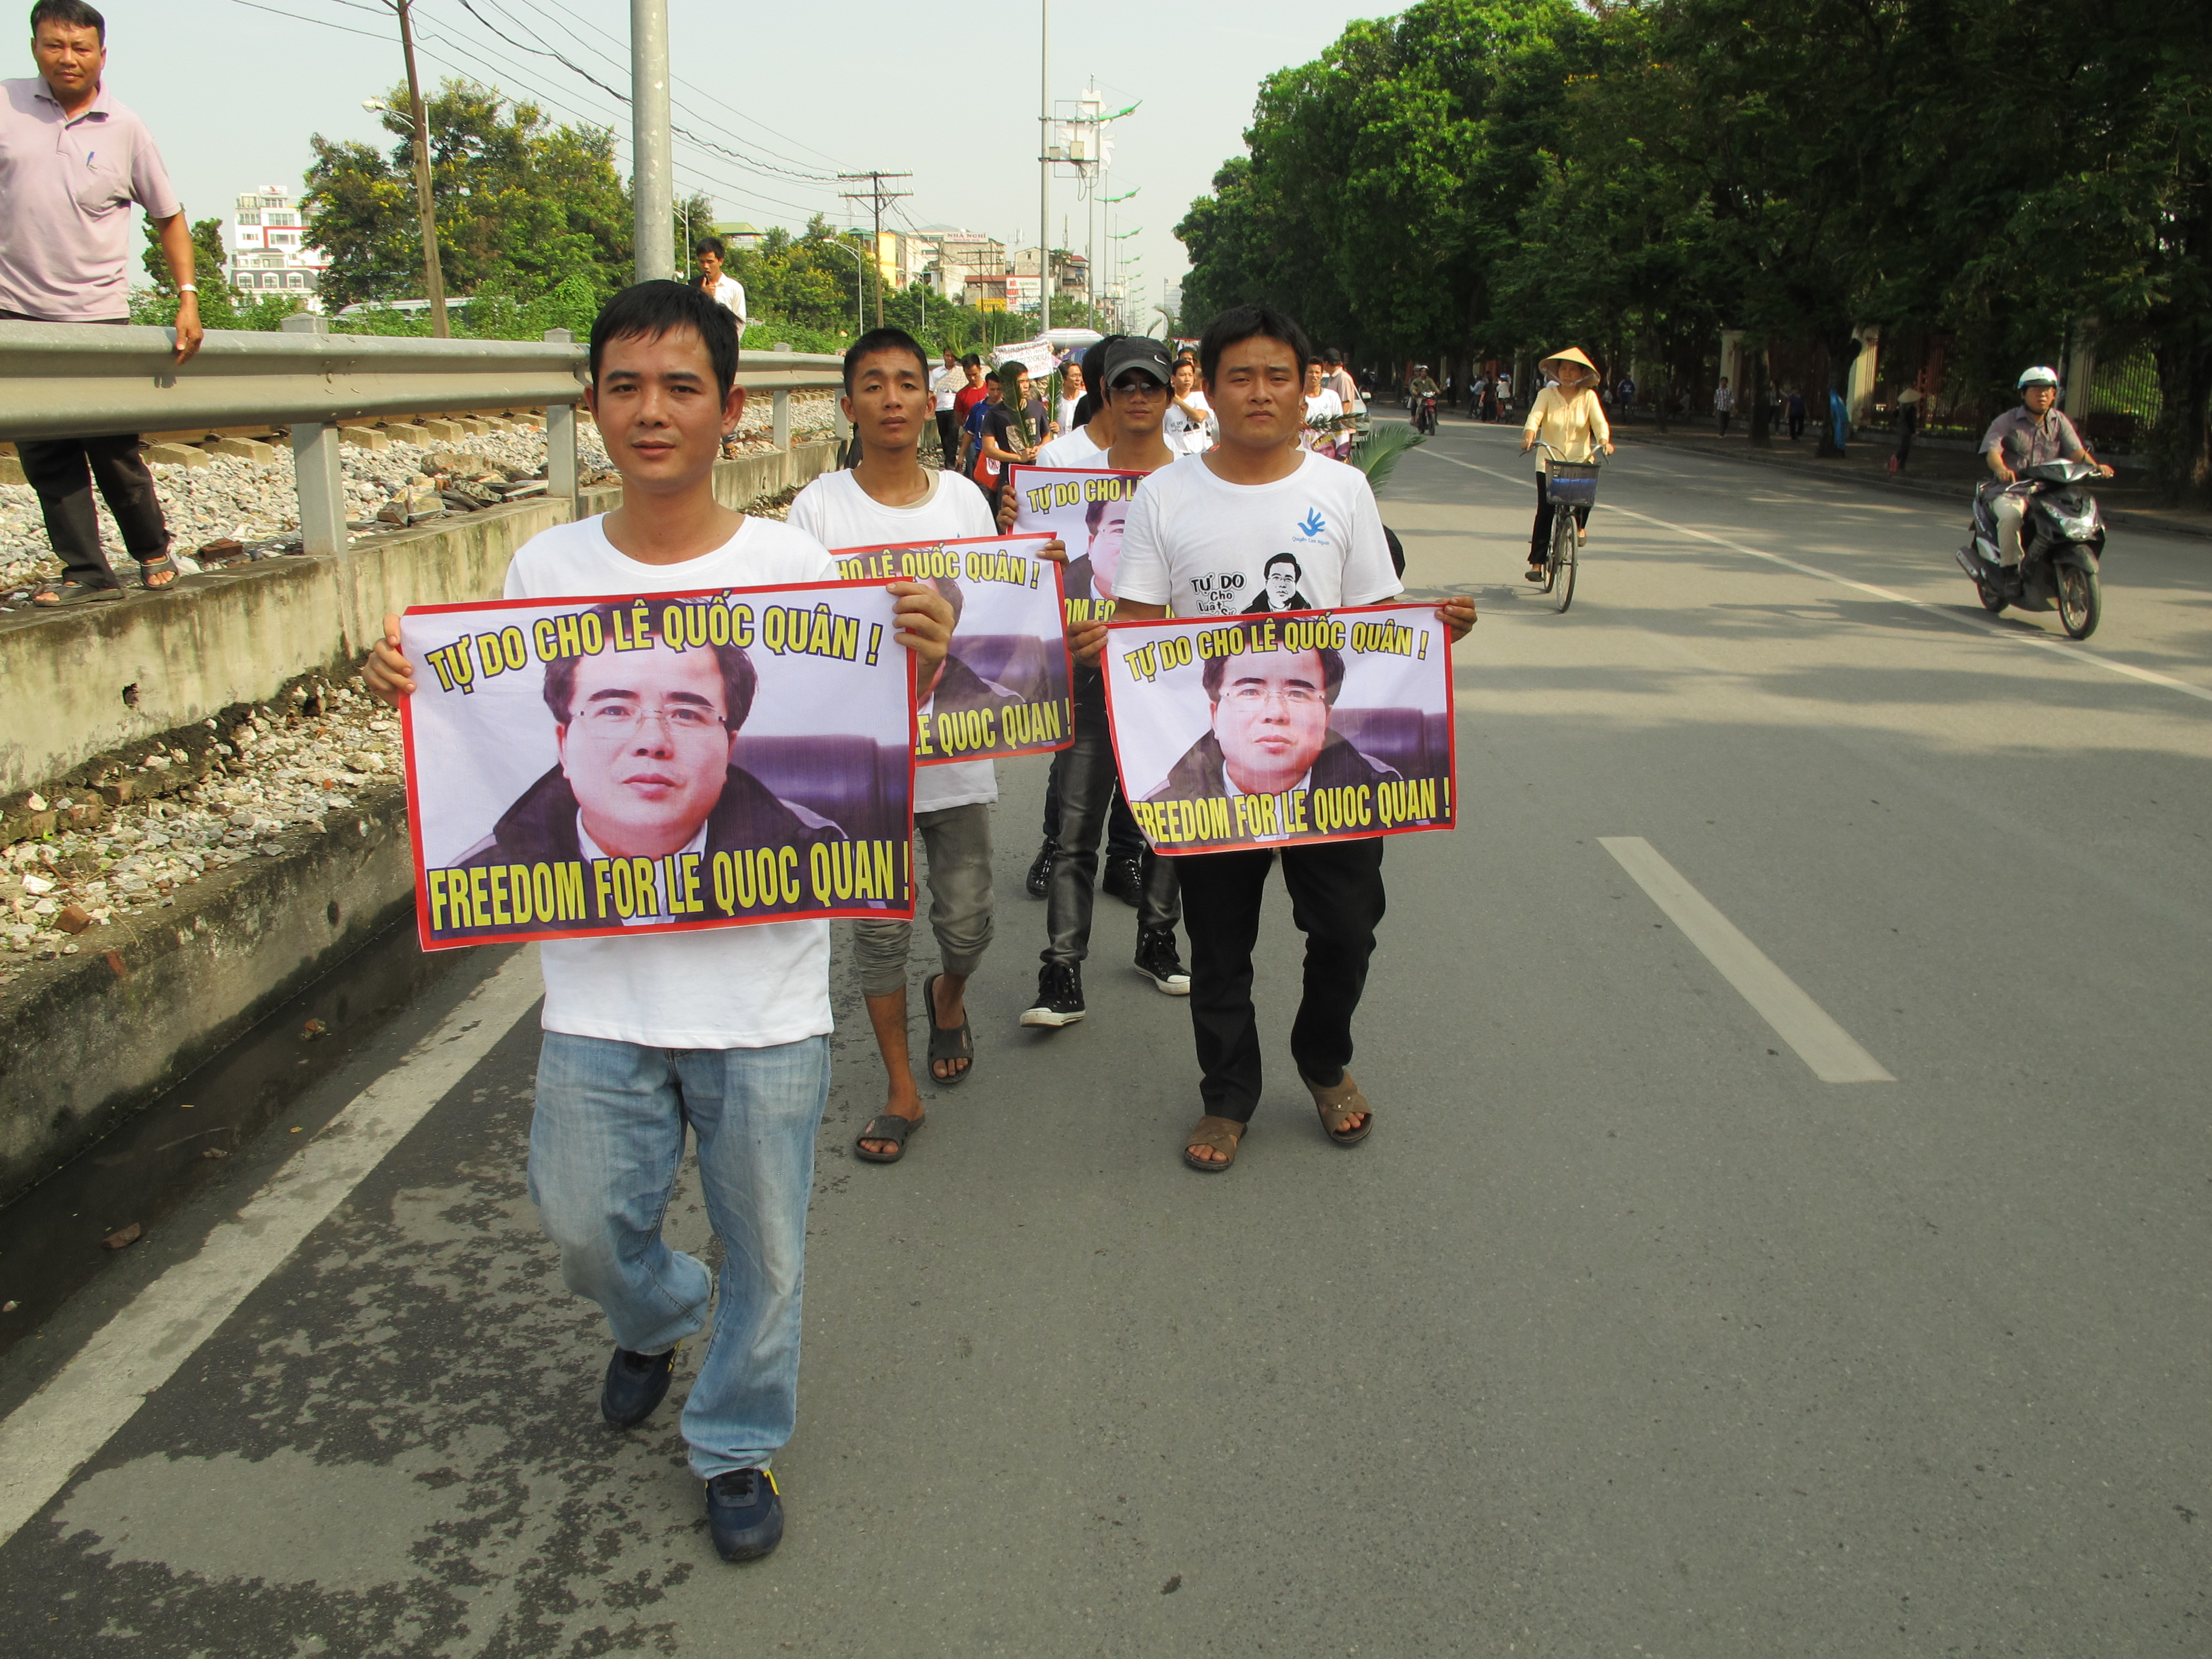 Supporters of Le Quoc Quan march in Hanoi, Oct. 2, 2013. (Marianne Brown for VOA)